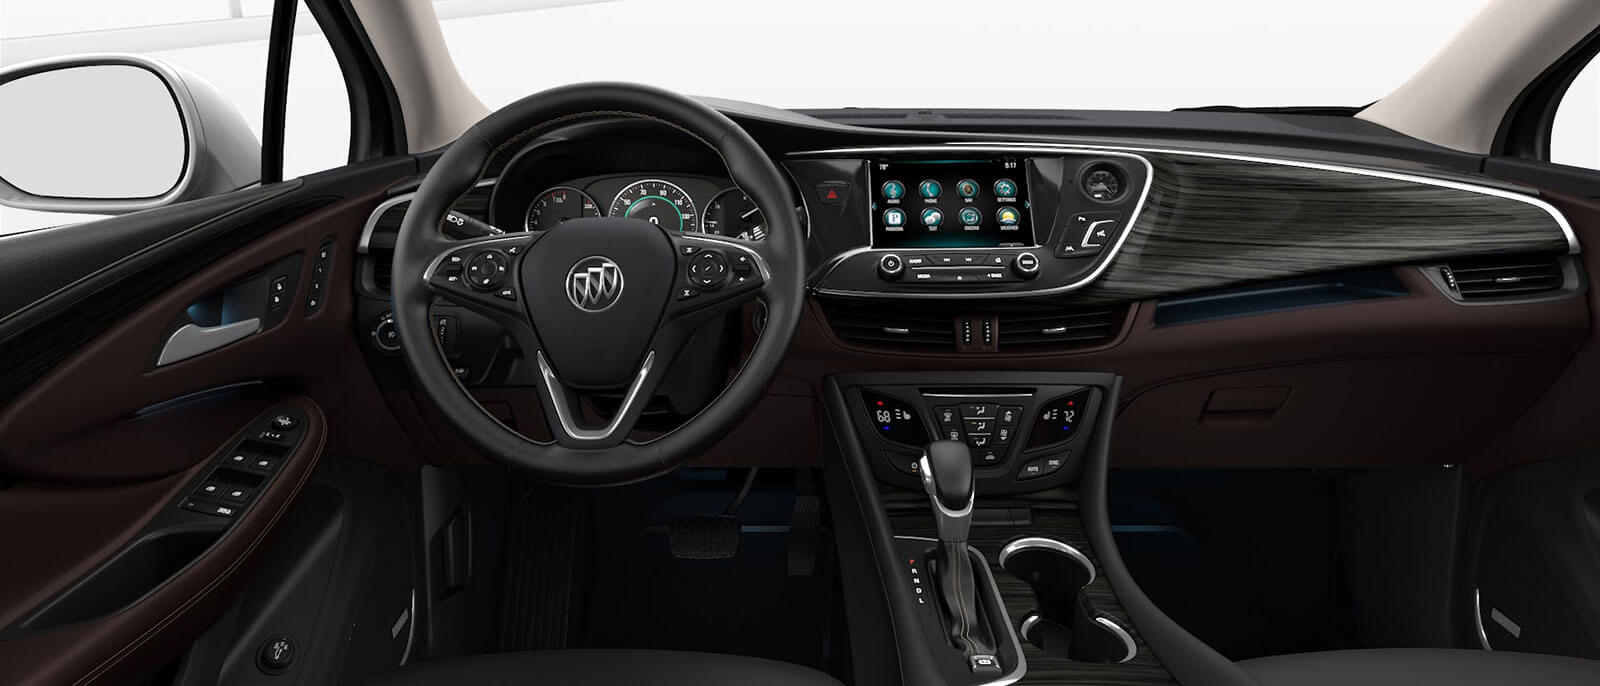 2017 Buick Envision interior dashboard view